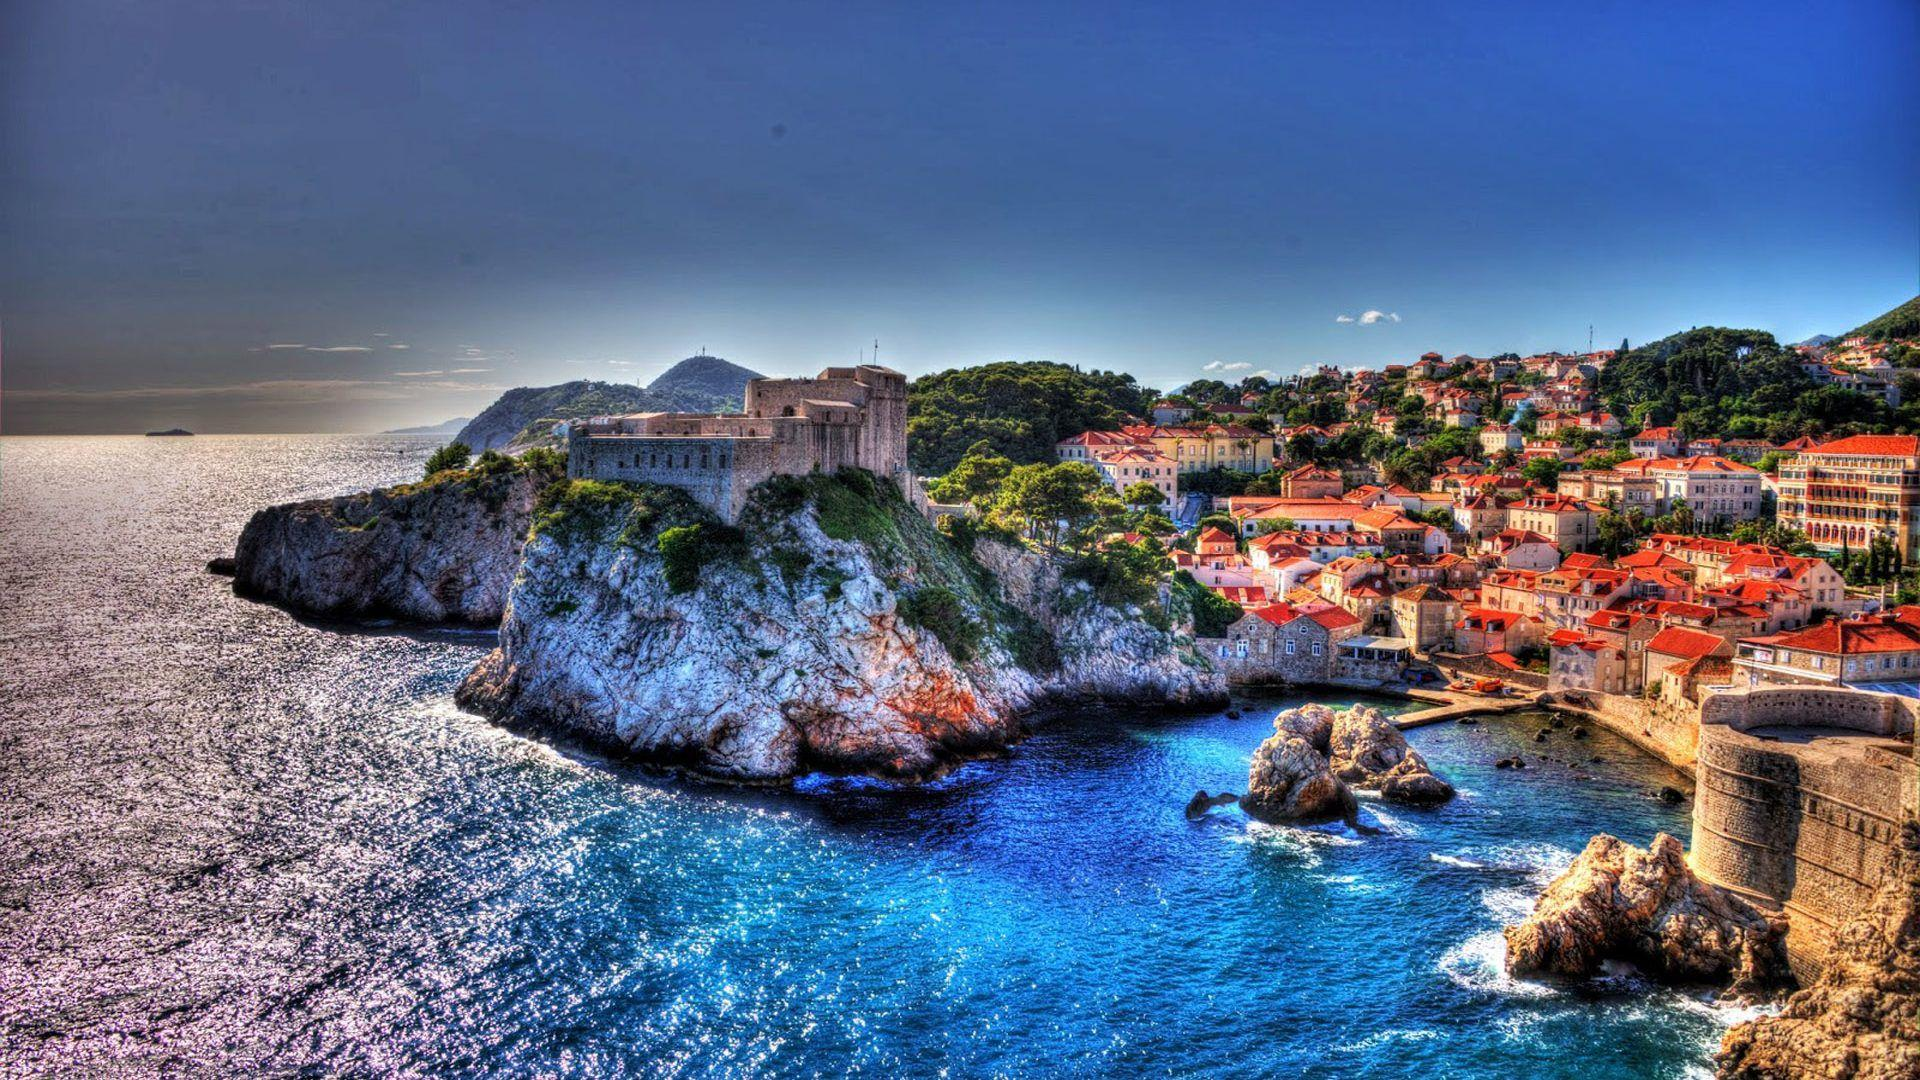 Adriatic Dubrovnik Croatia Ancient City Walls And Historical